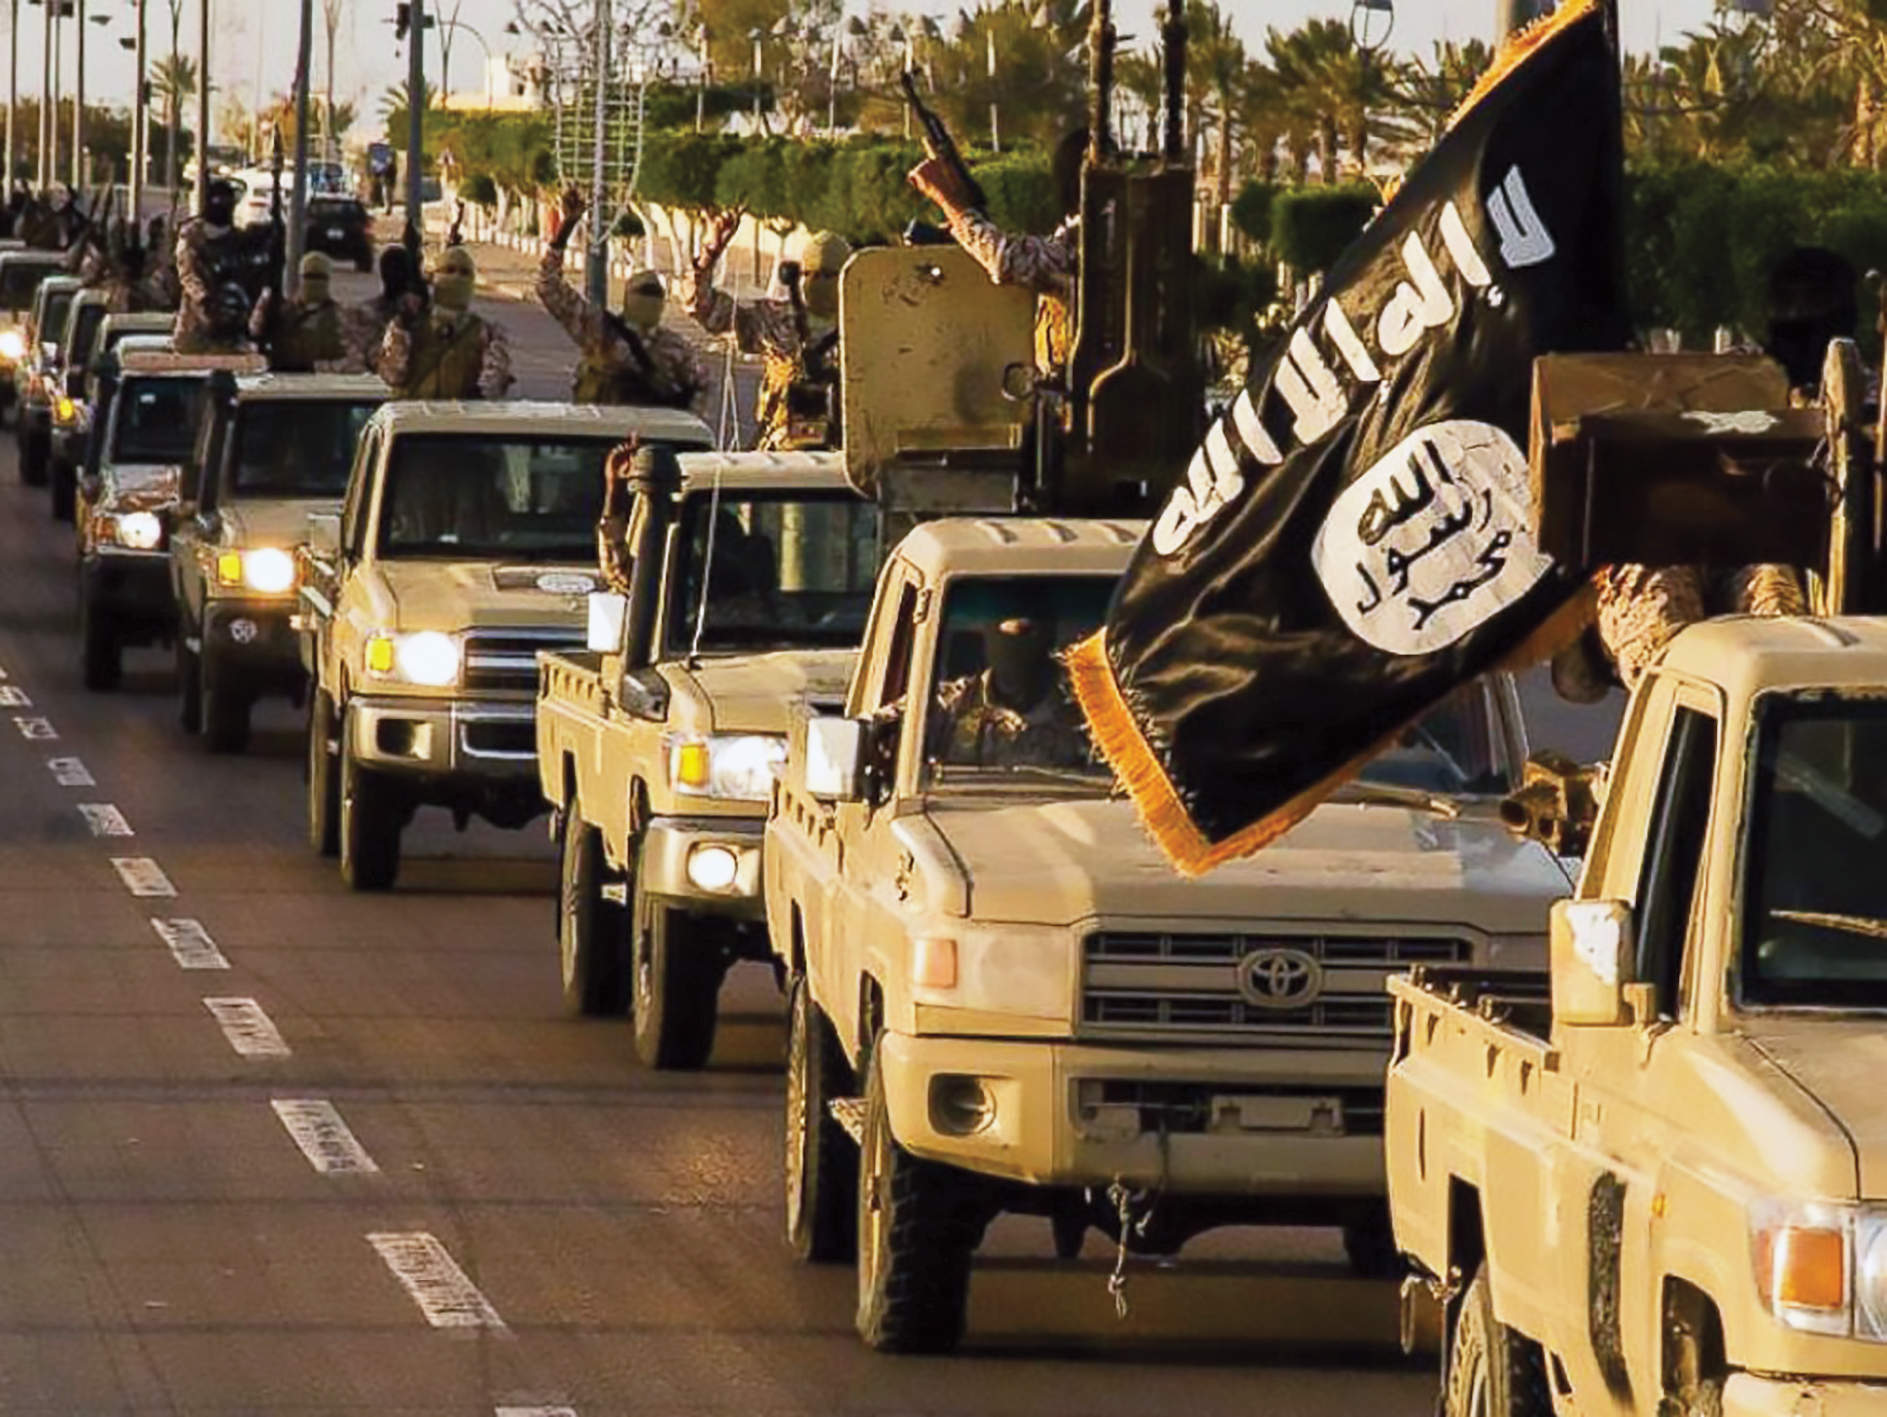 Into the terror zone: how Isis has gained support in Syria, Iraq and Libya